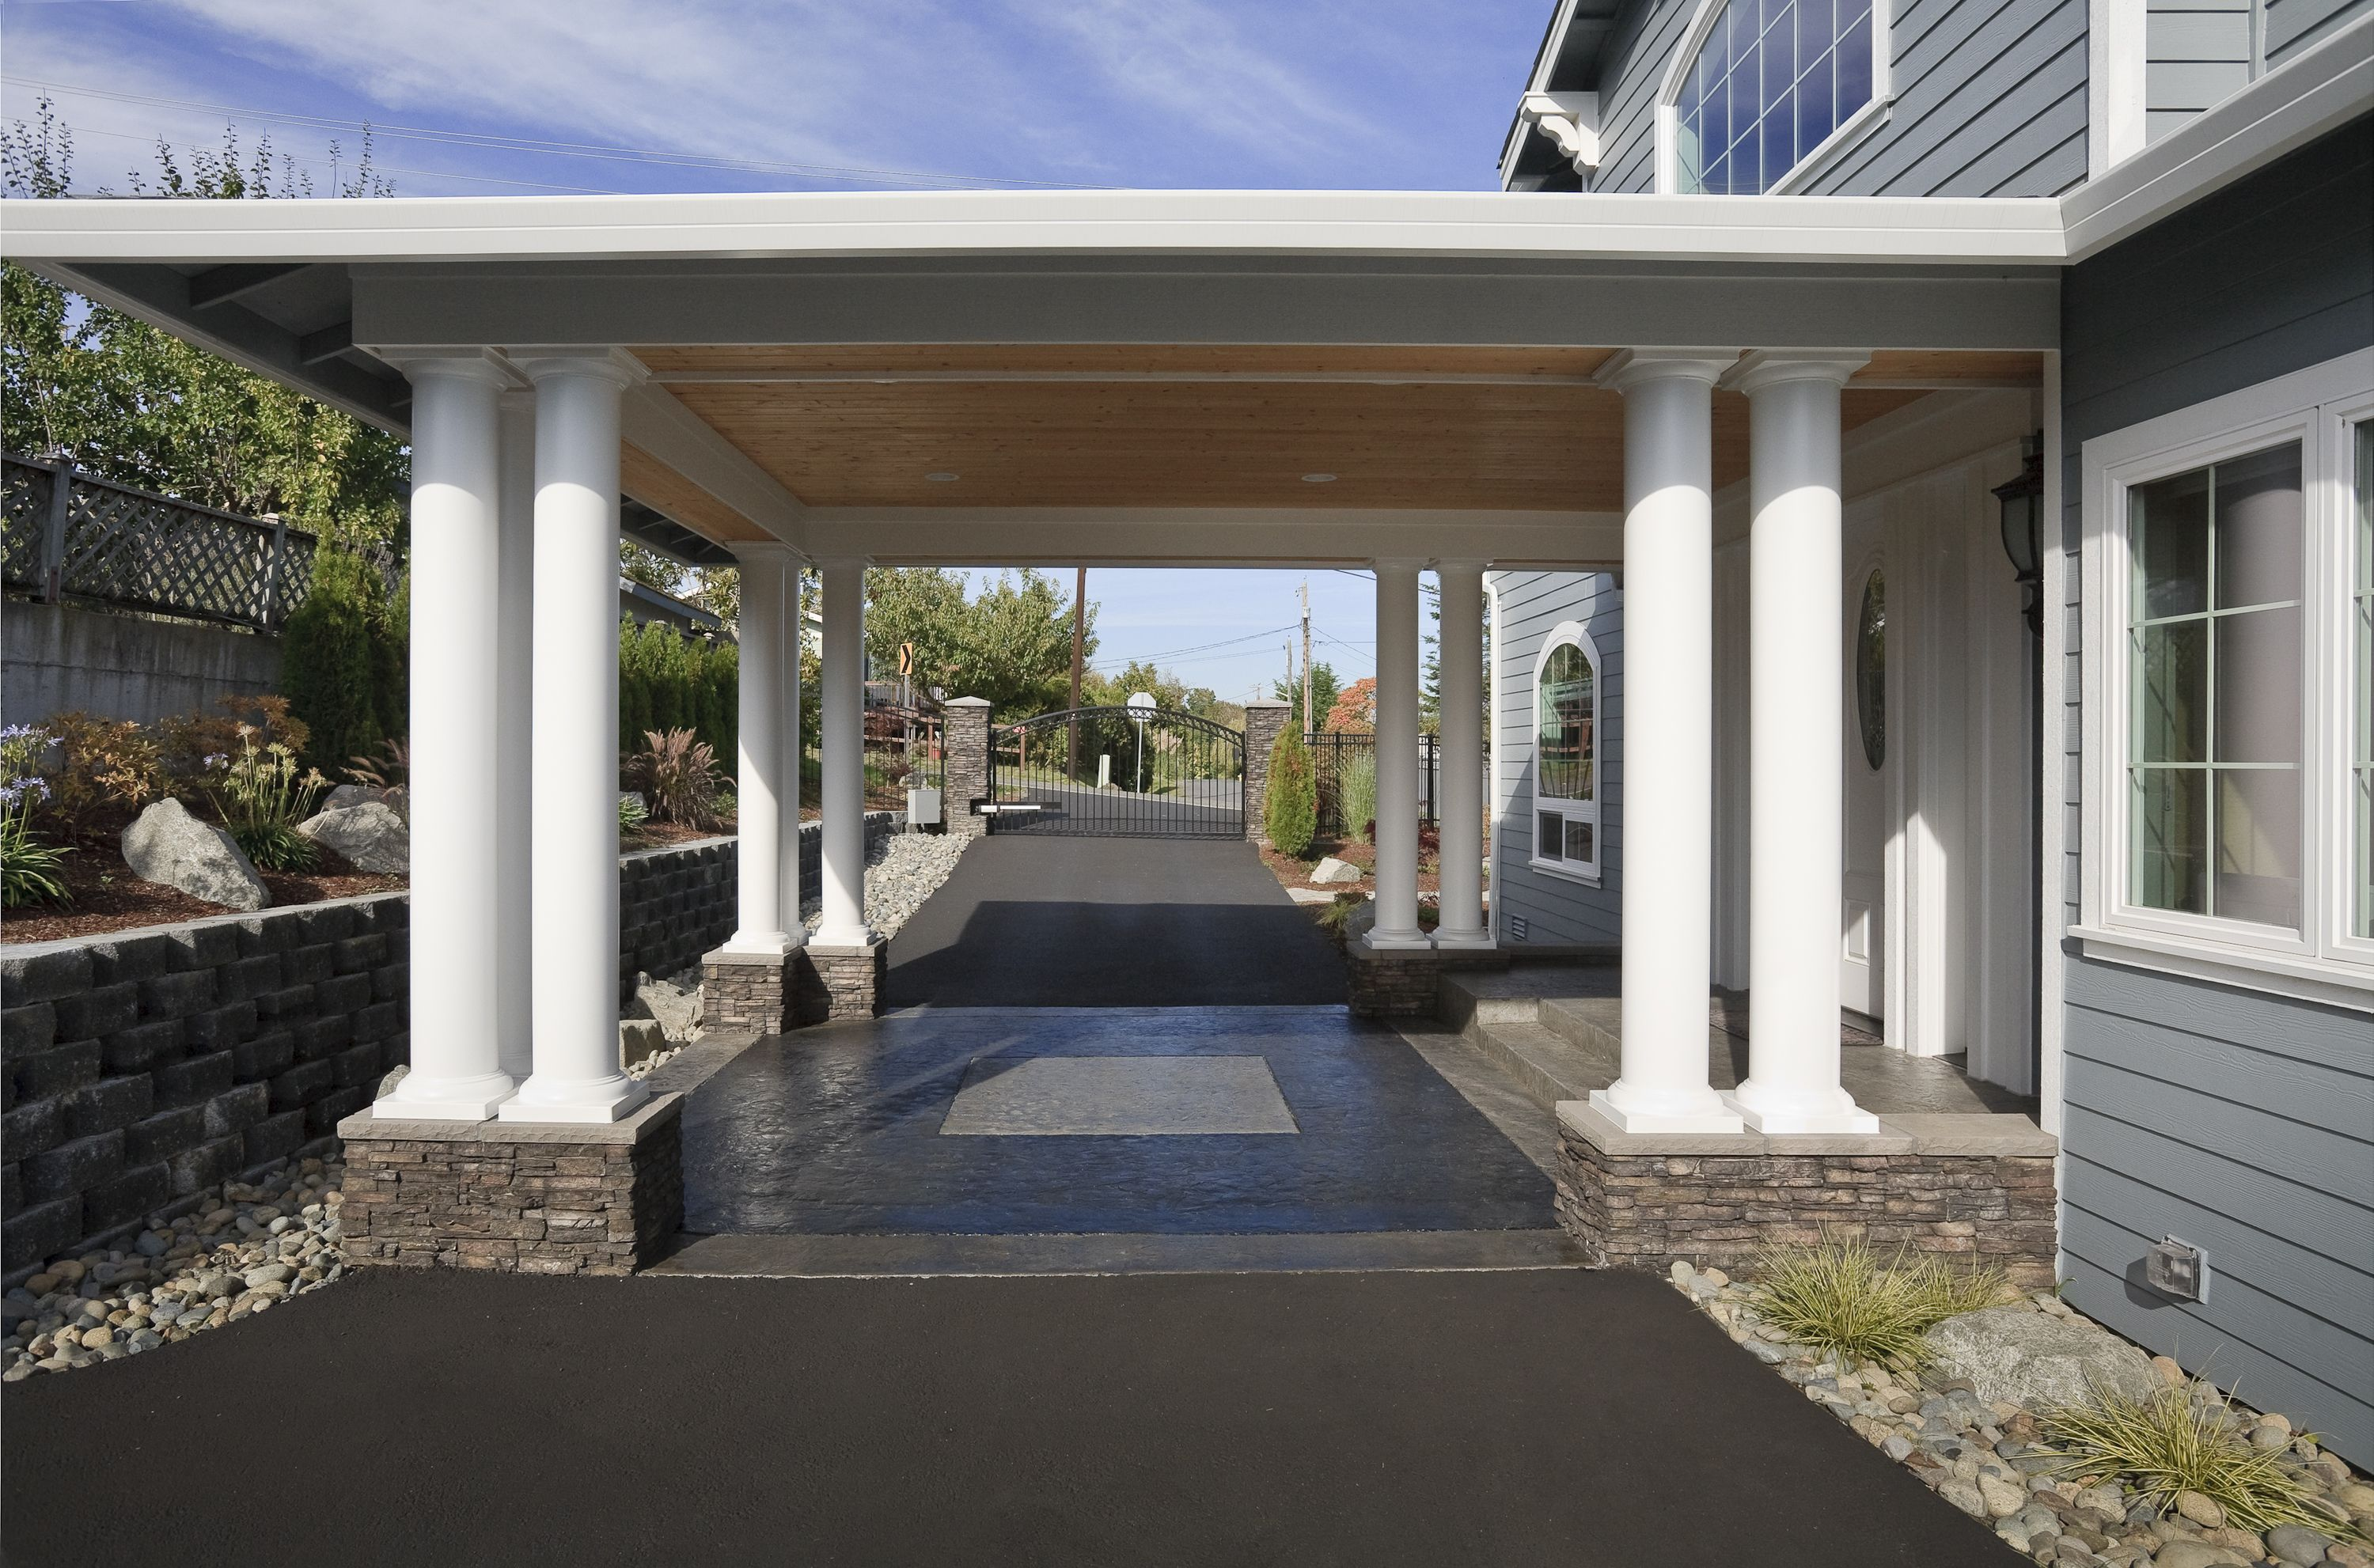 Choice Construction Remodel Custom Homes Gig Harbor Driveway Front Entry Port Cochere Portico Beams Covered Wood Ceiling